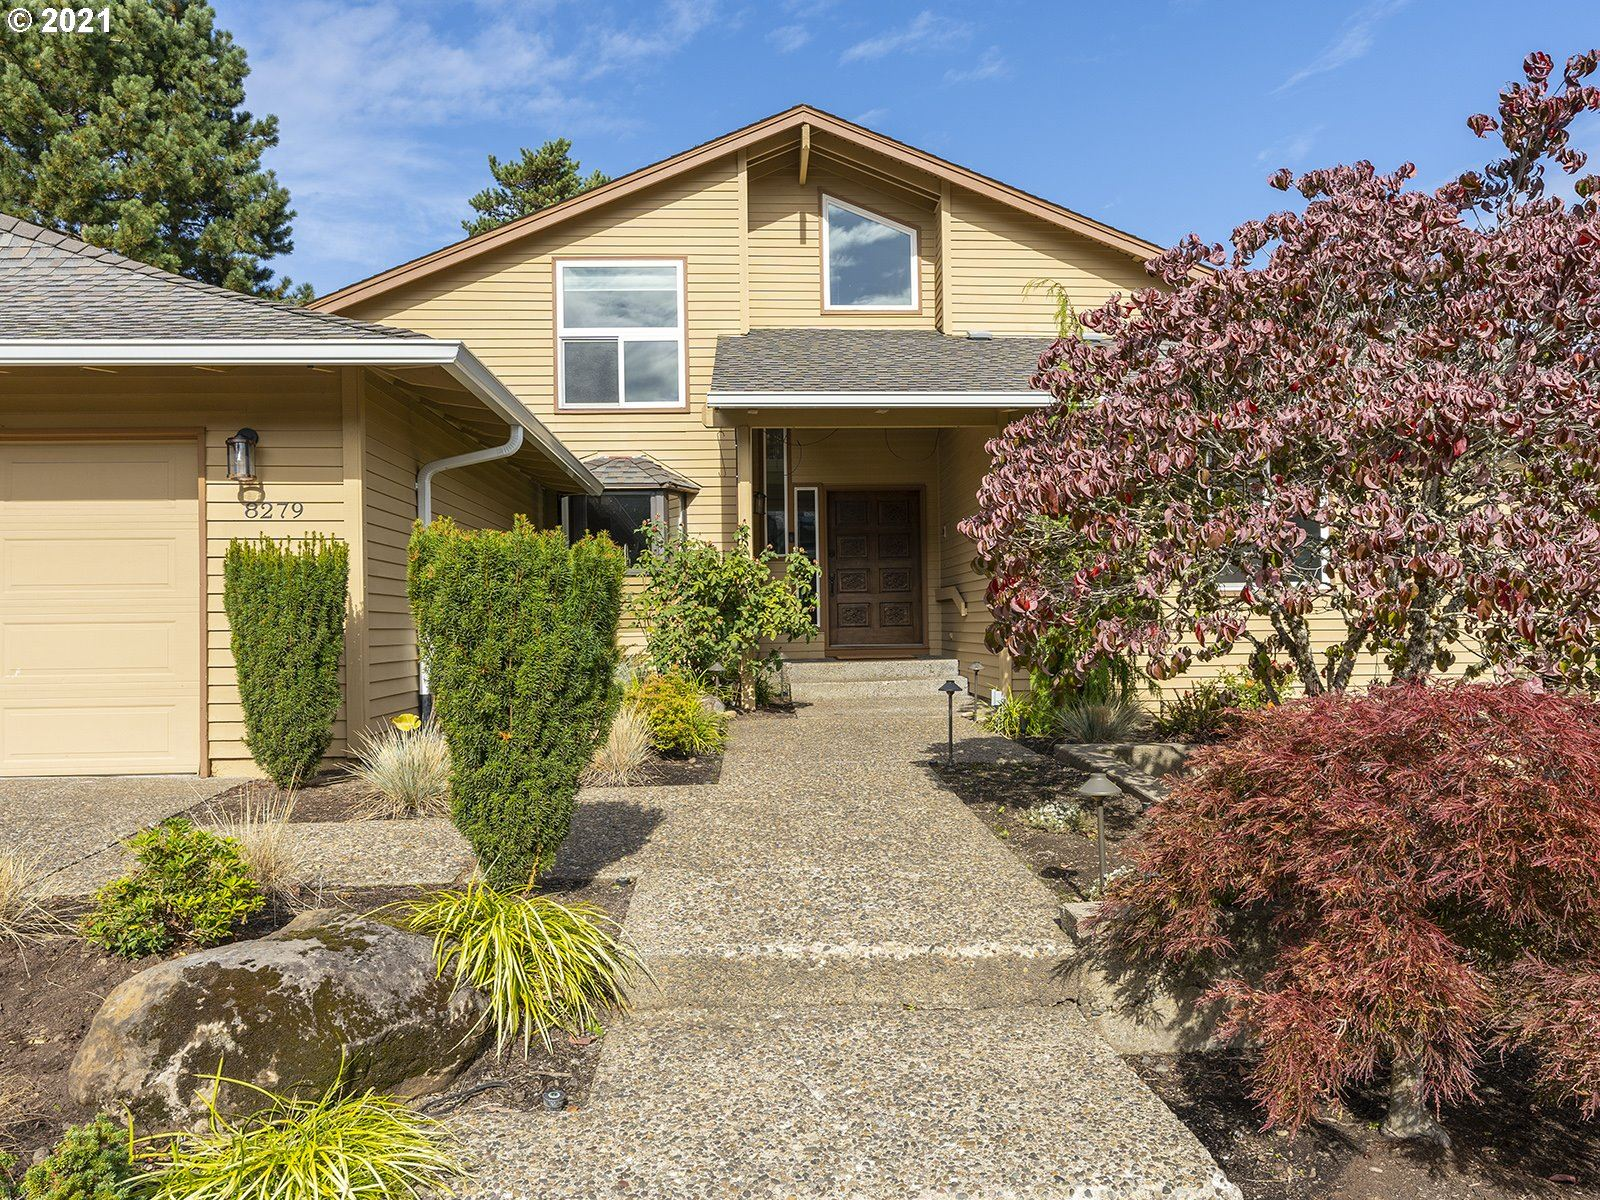 Photo of 8279 SW 184TH AVE, Aloha, OR 97007 (MLS # 21268182)